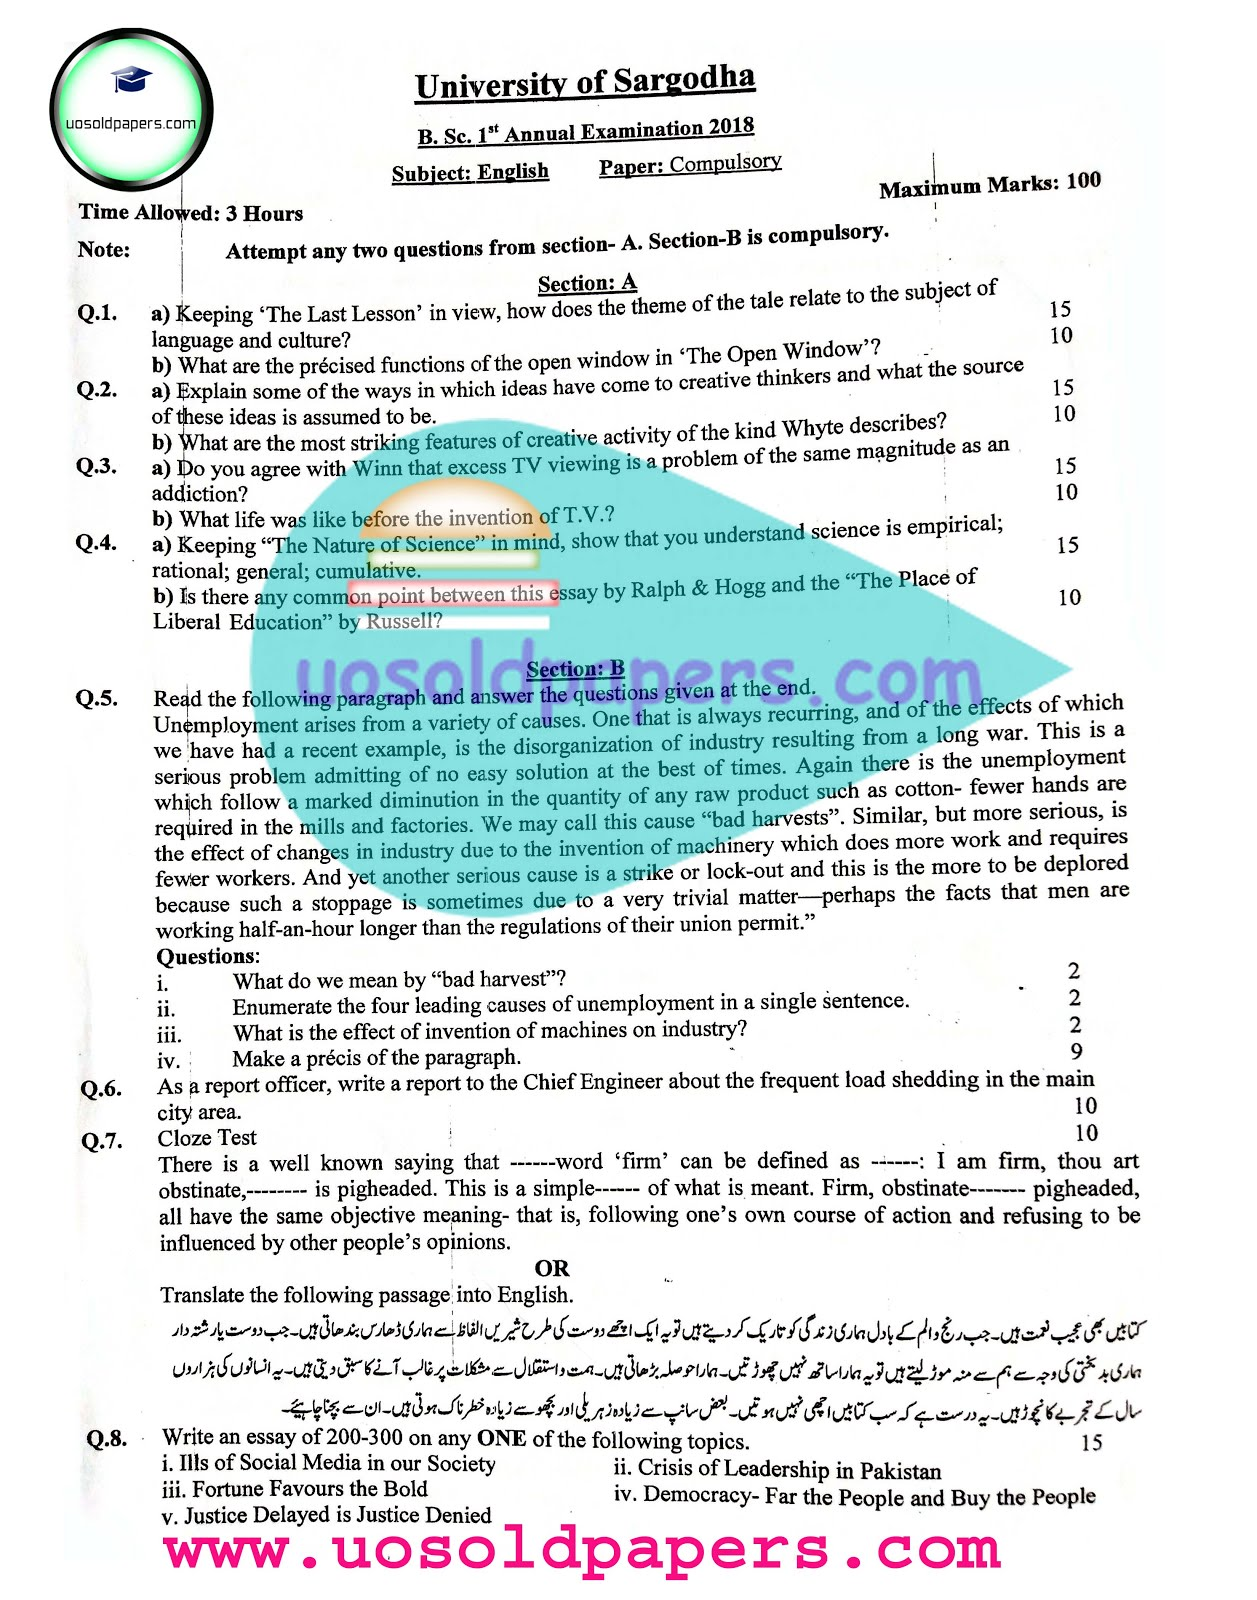 UOS Past Papers of English BSc (Compulsory), BA/BSc, 1st Annual Examination 2018